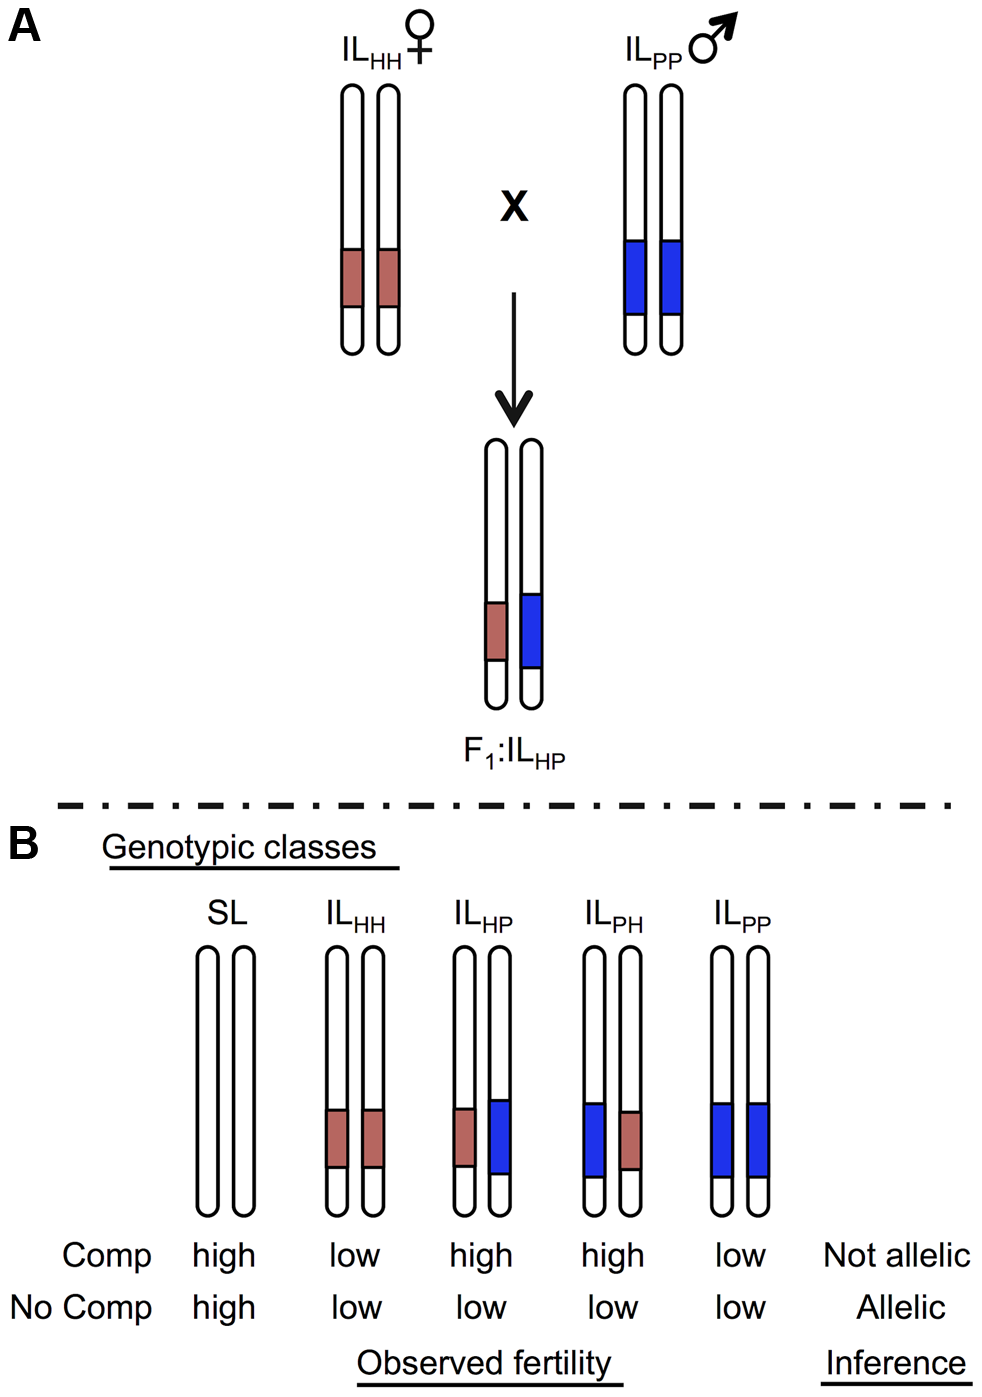 Schematic of a cross species test of allelism to determine homology at co-localized hybrid sterility loci.